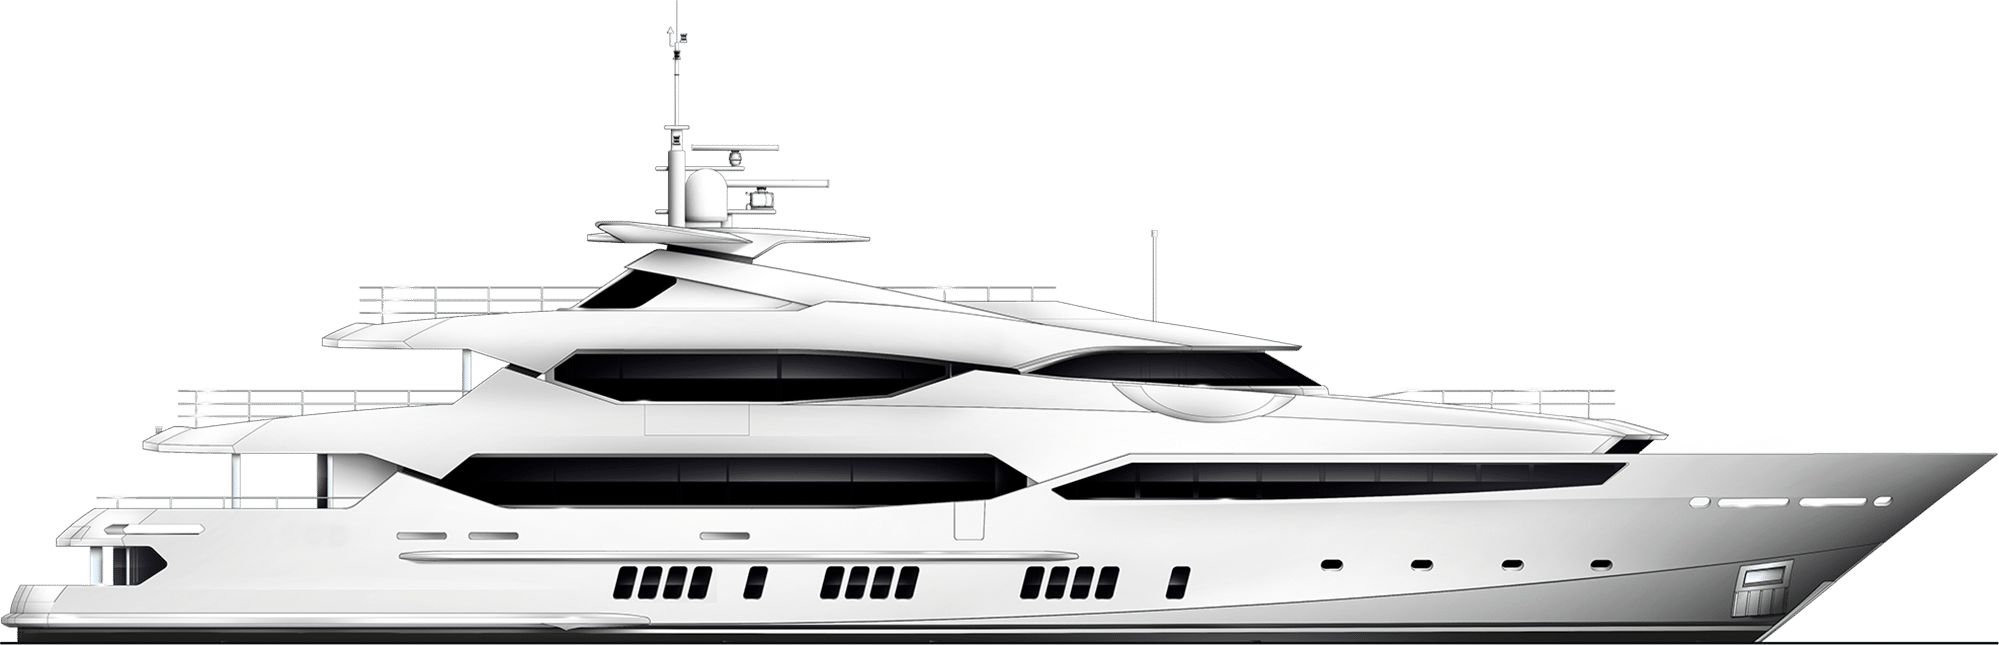 Luxury Motor Yacht